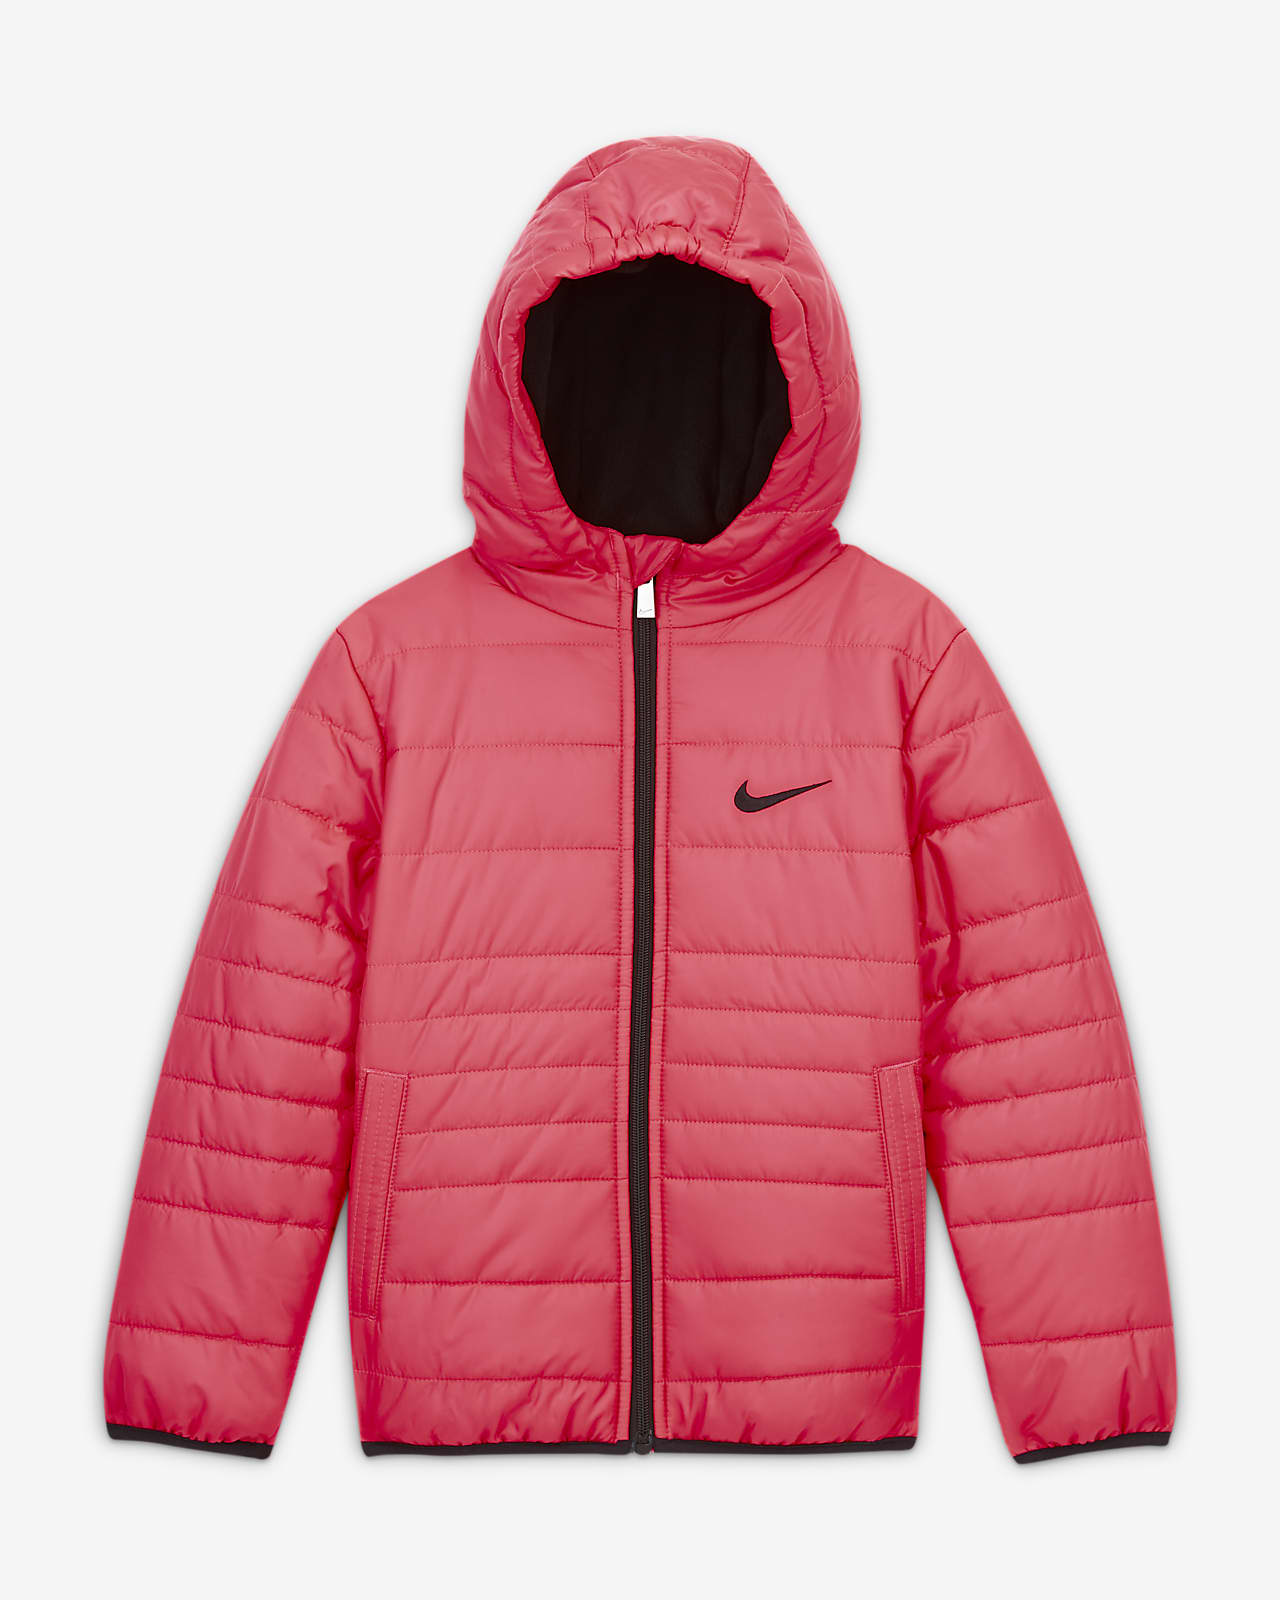 Nike Younger Kids' Puffer Jacket